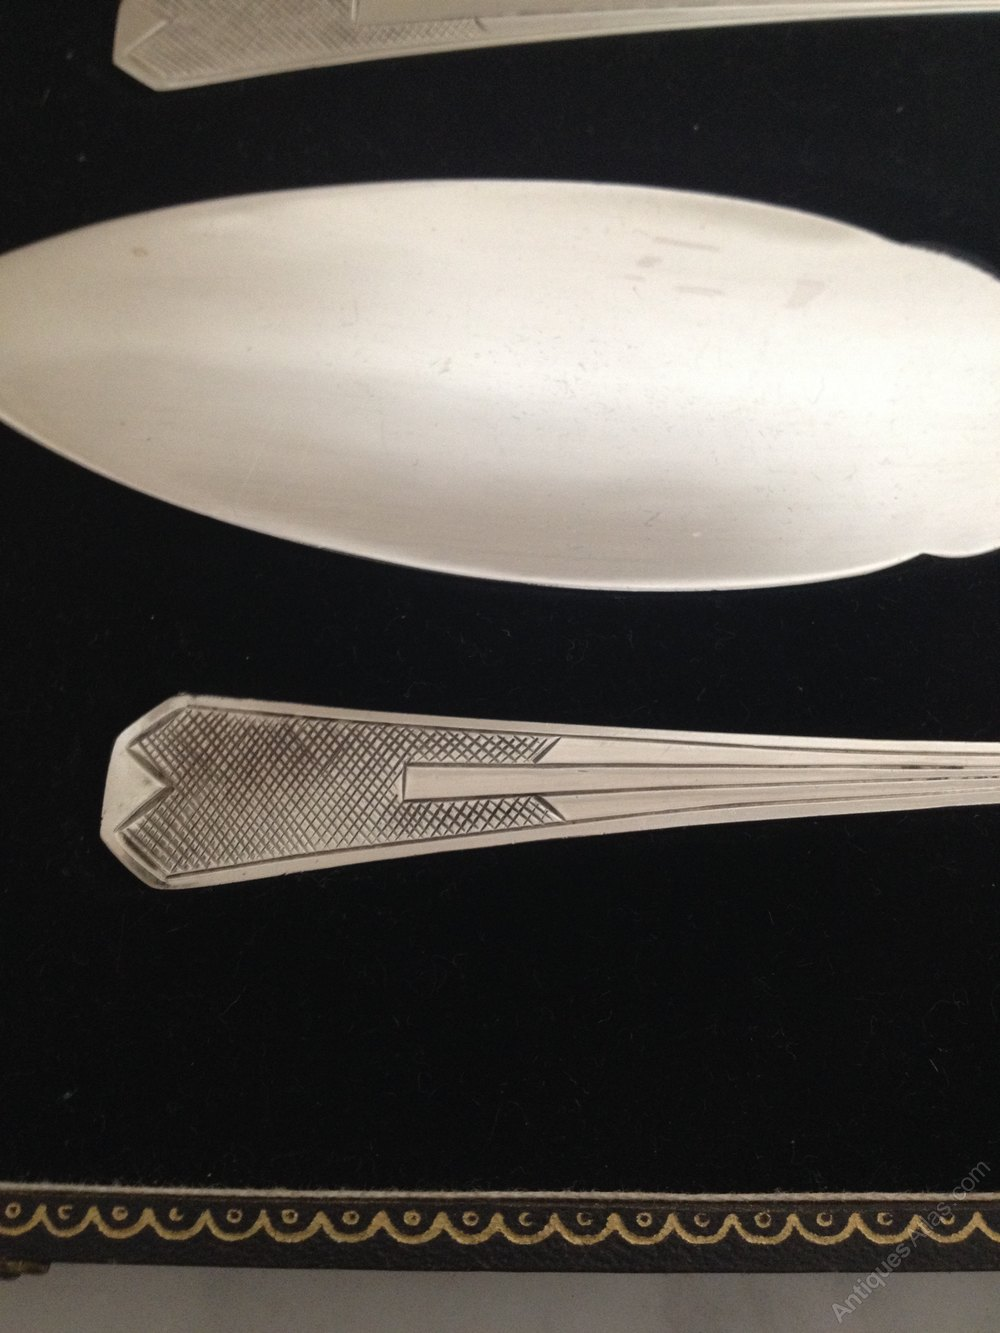 Art Deco Cake Slice : Antiques Atlas - Silver Plated Serving Spoon And Cake ...